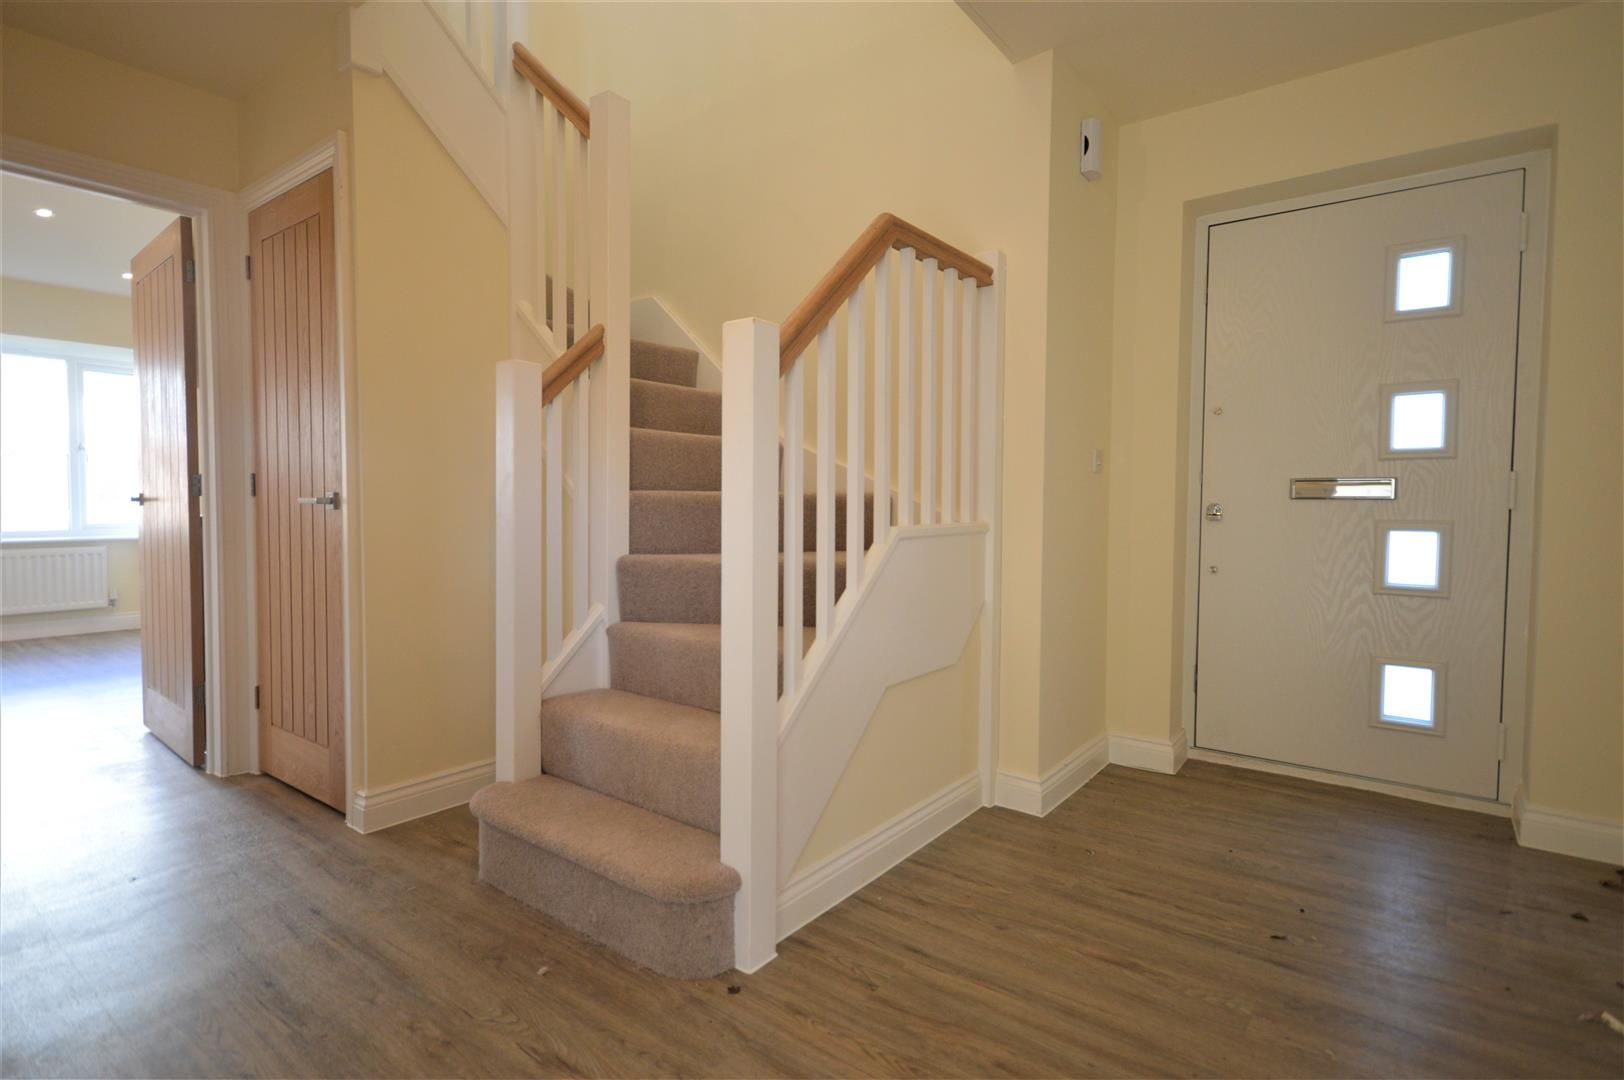 4 bed detached for sale in Kingsland 6